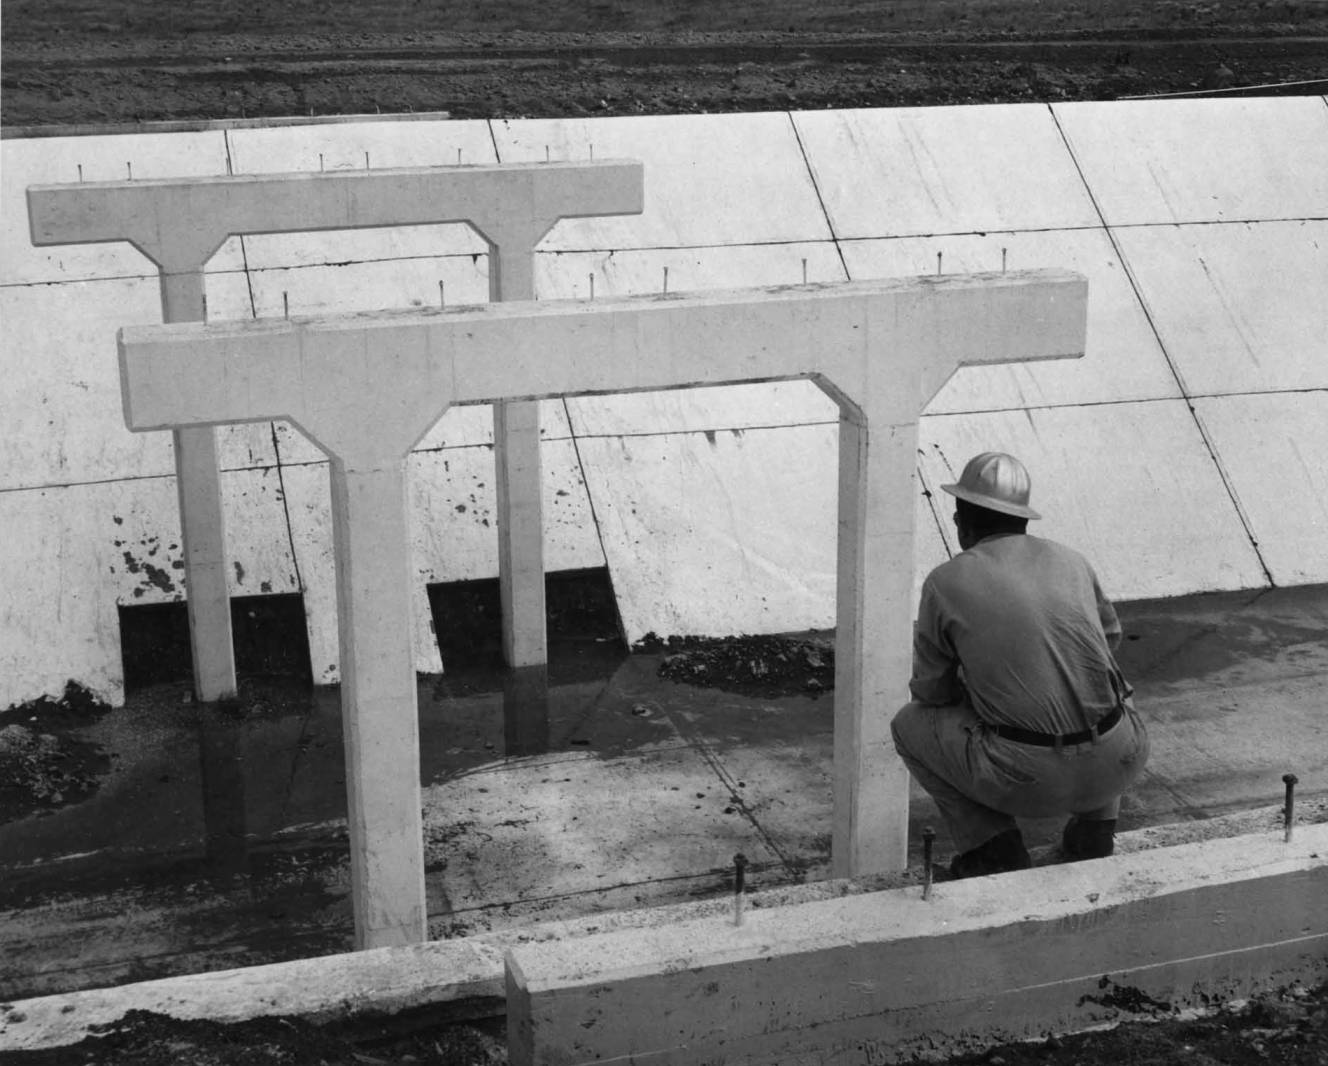 item thumbnail for Bridge Bents And Abutments (Canal lining and construction)